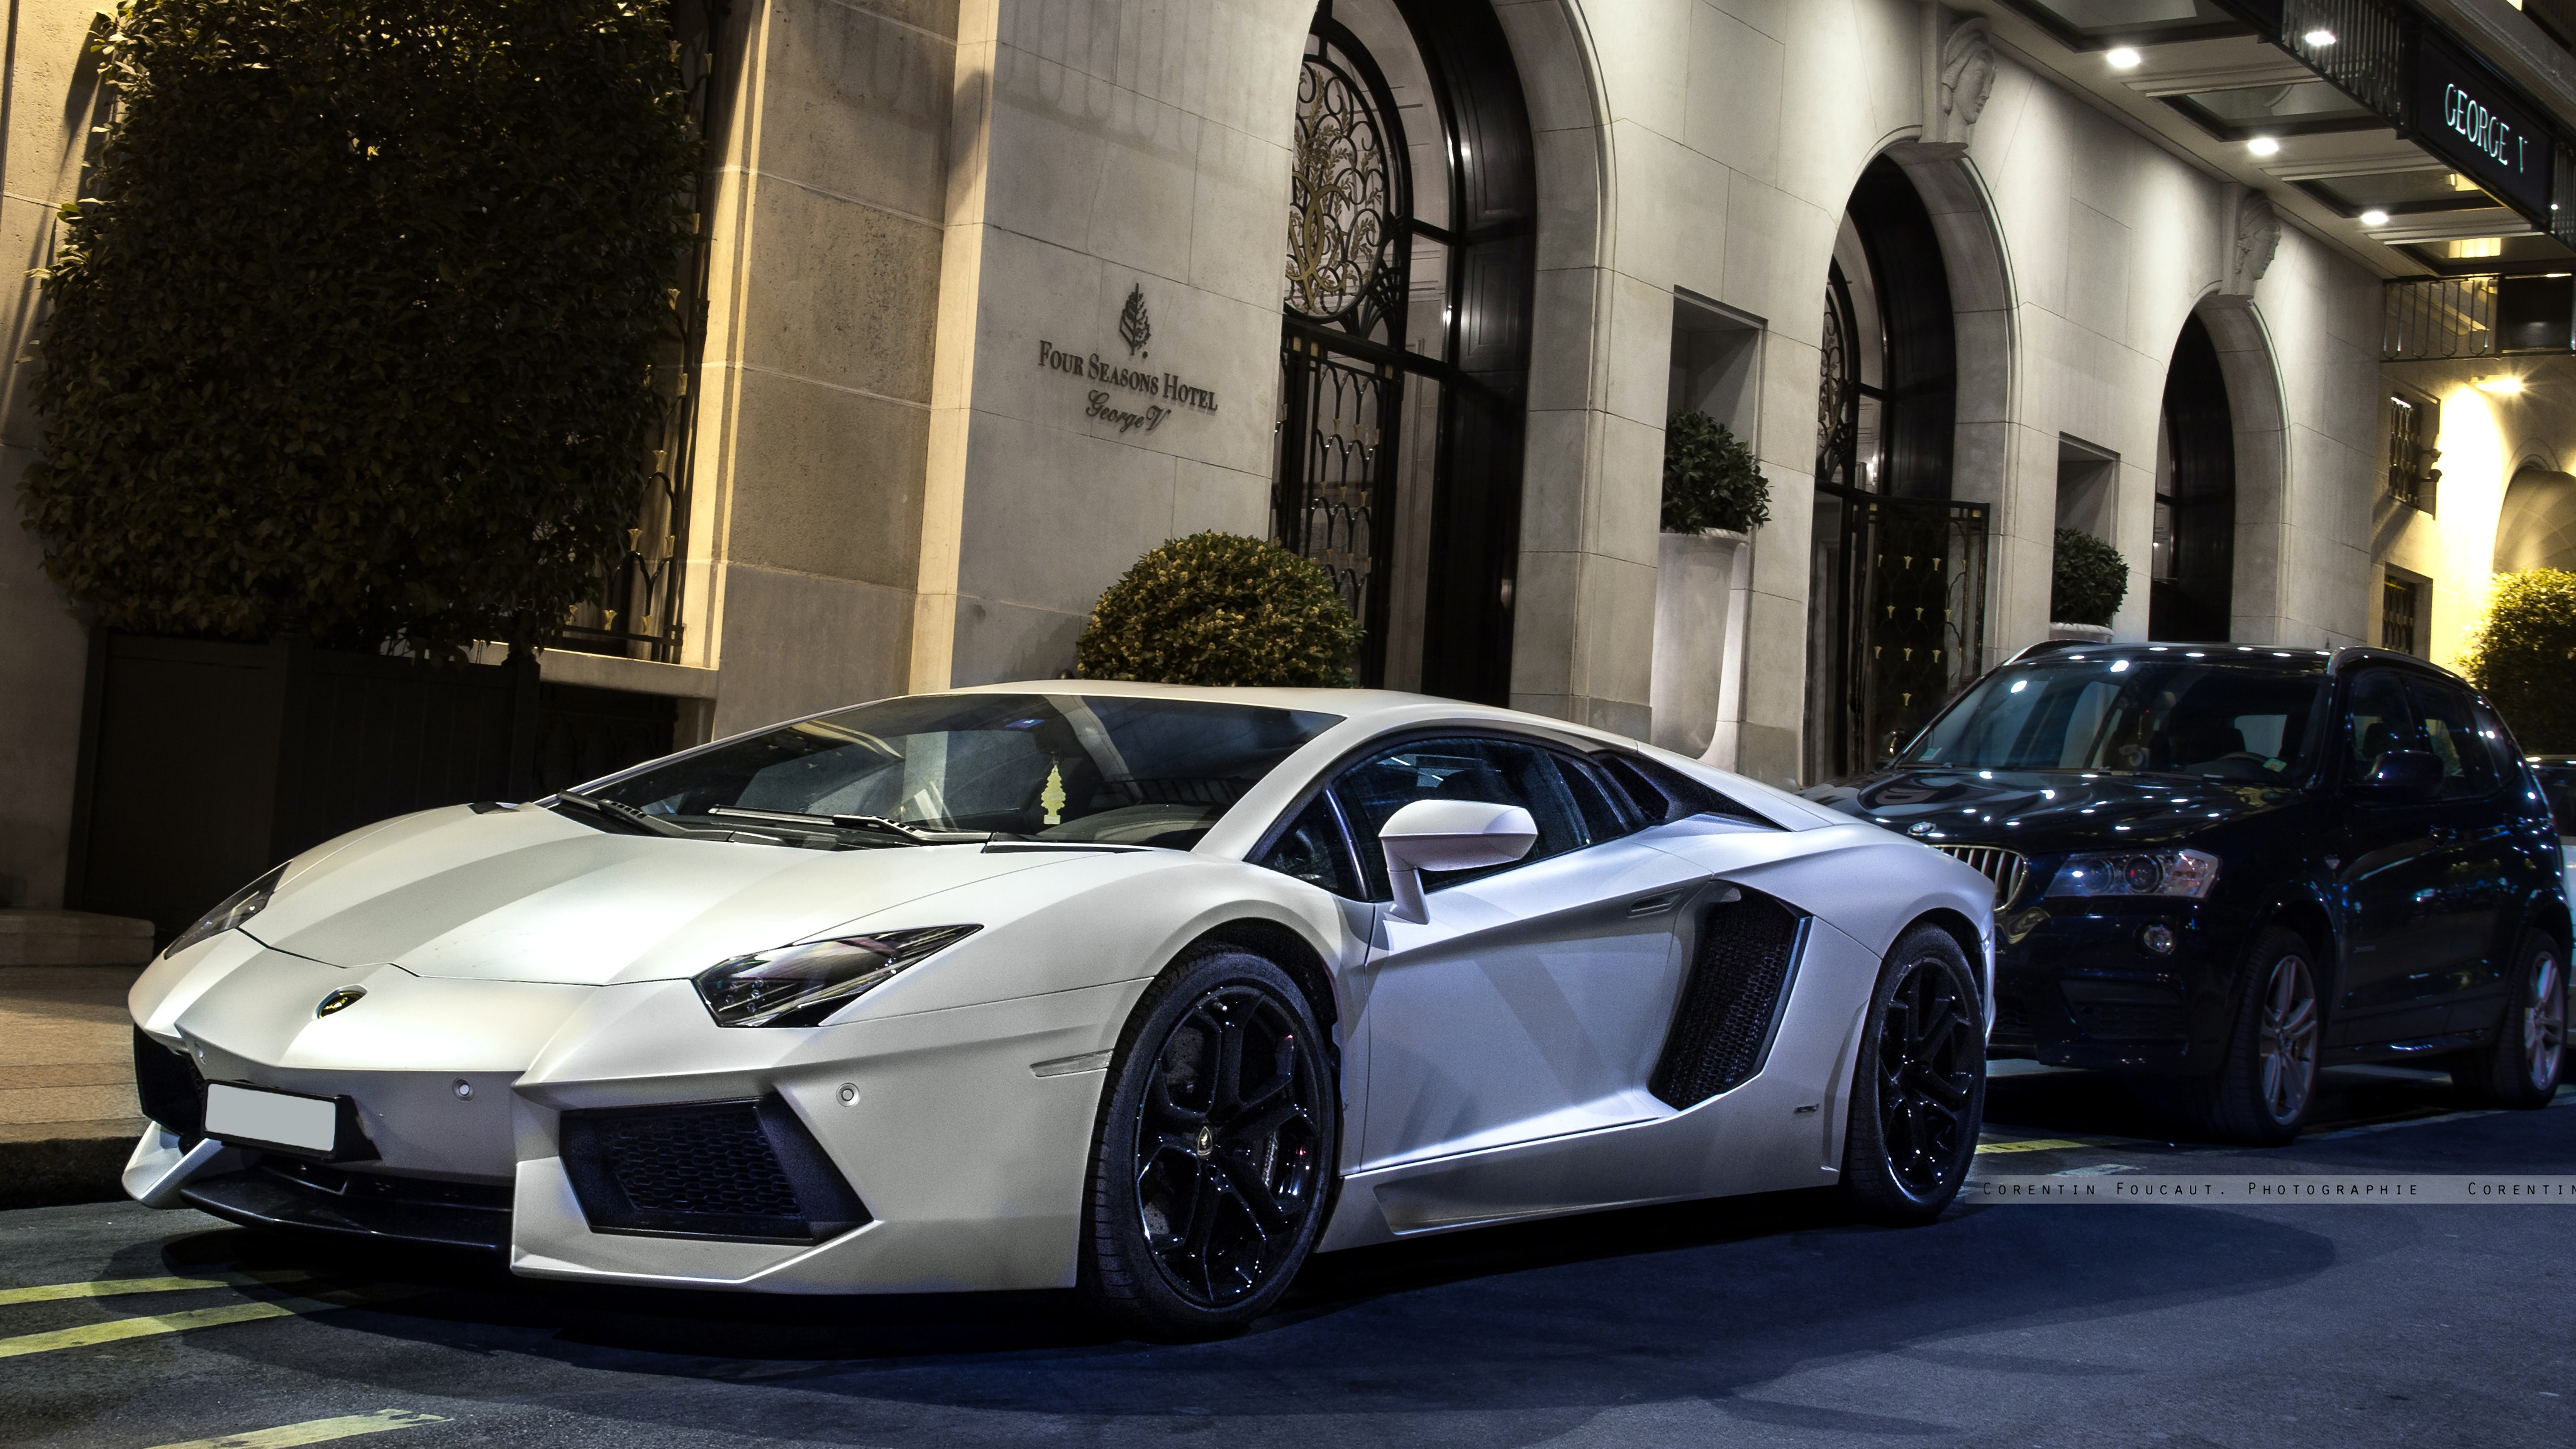 lamborghini aventador hd wallpapers backgrounds 4096x2304